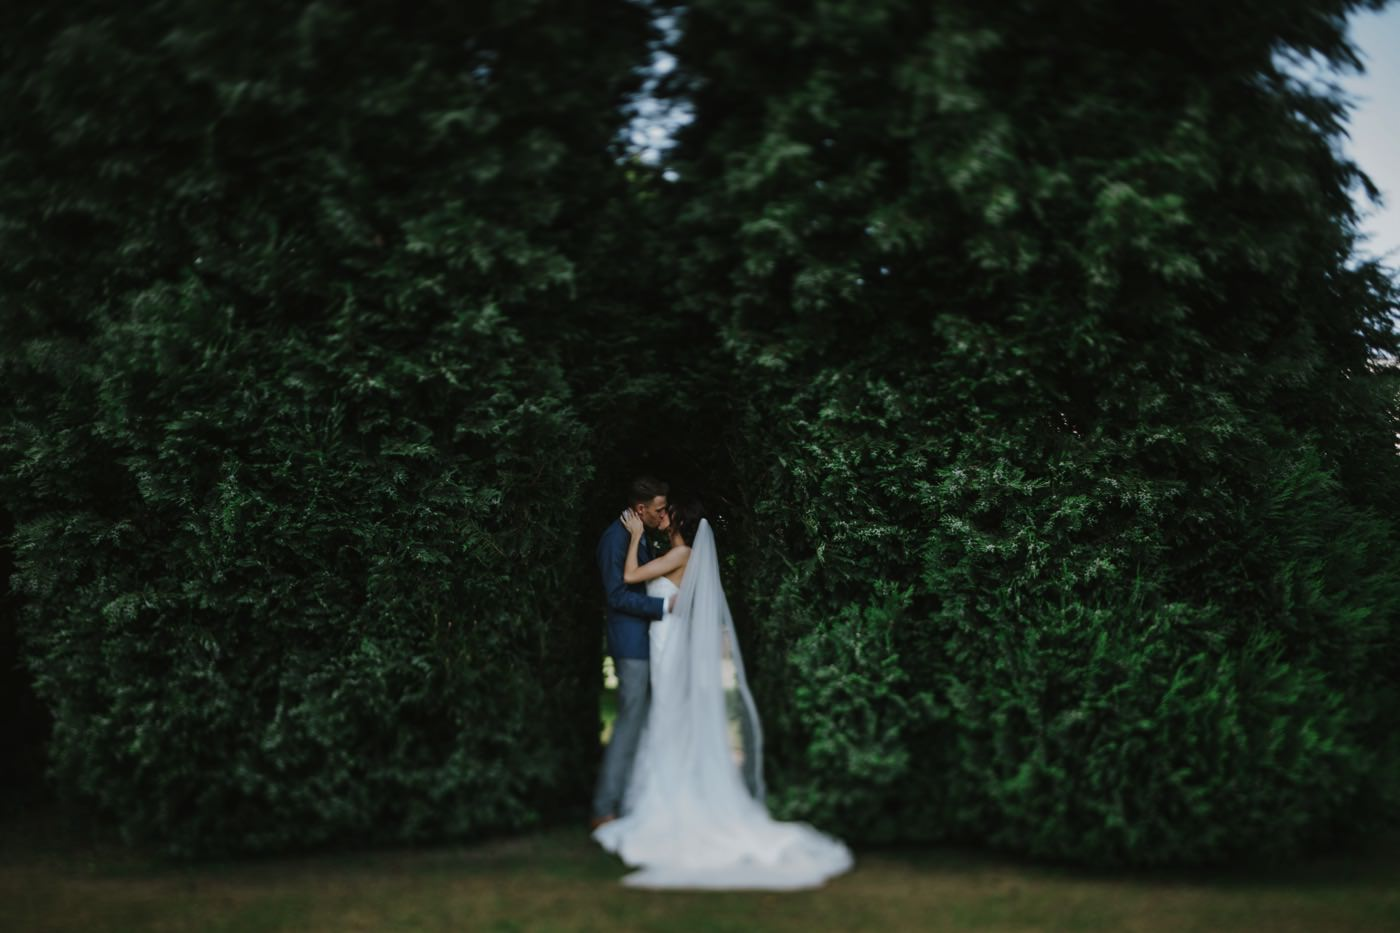 Matt & Emma | Hooton Pagnell Hall & Stable Arches 69